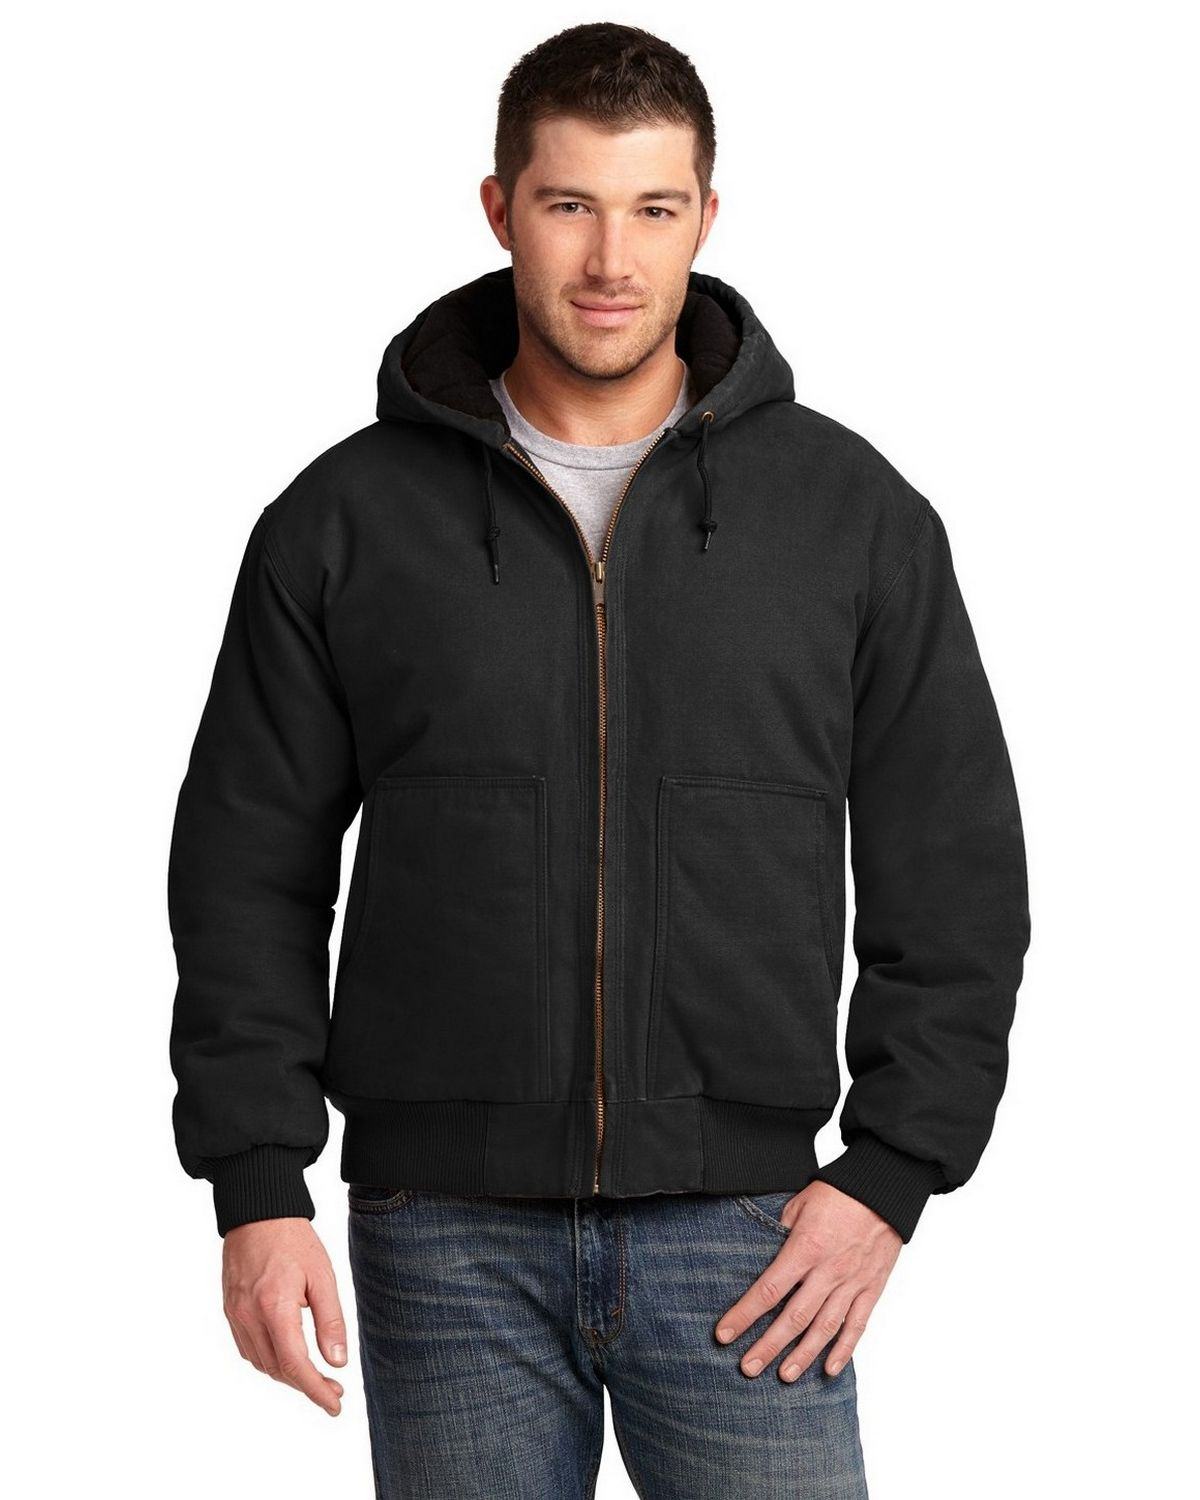 Cornerstone CSJ41 Insulated Hooded Work Jacket - Black - M CSJ41